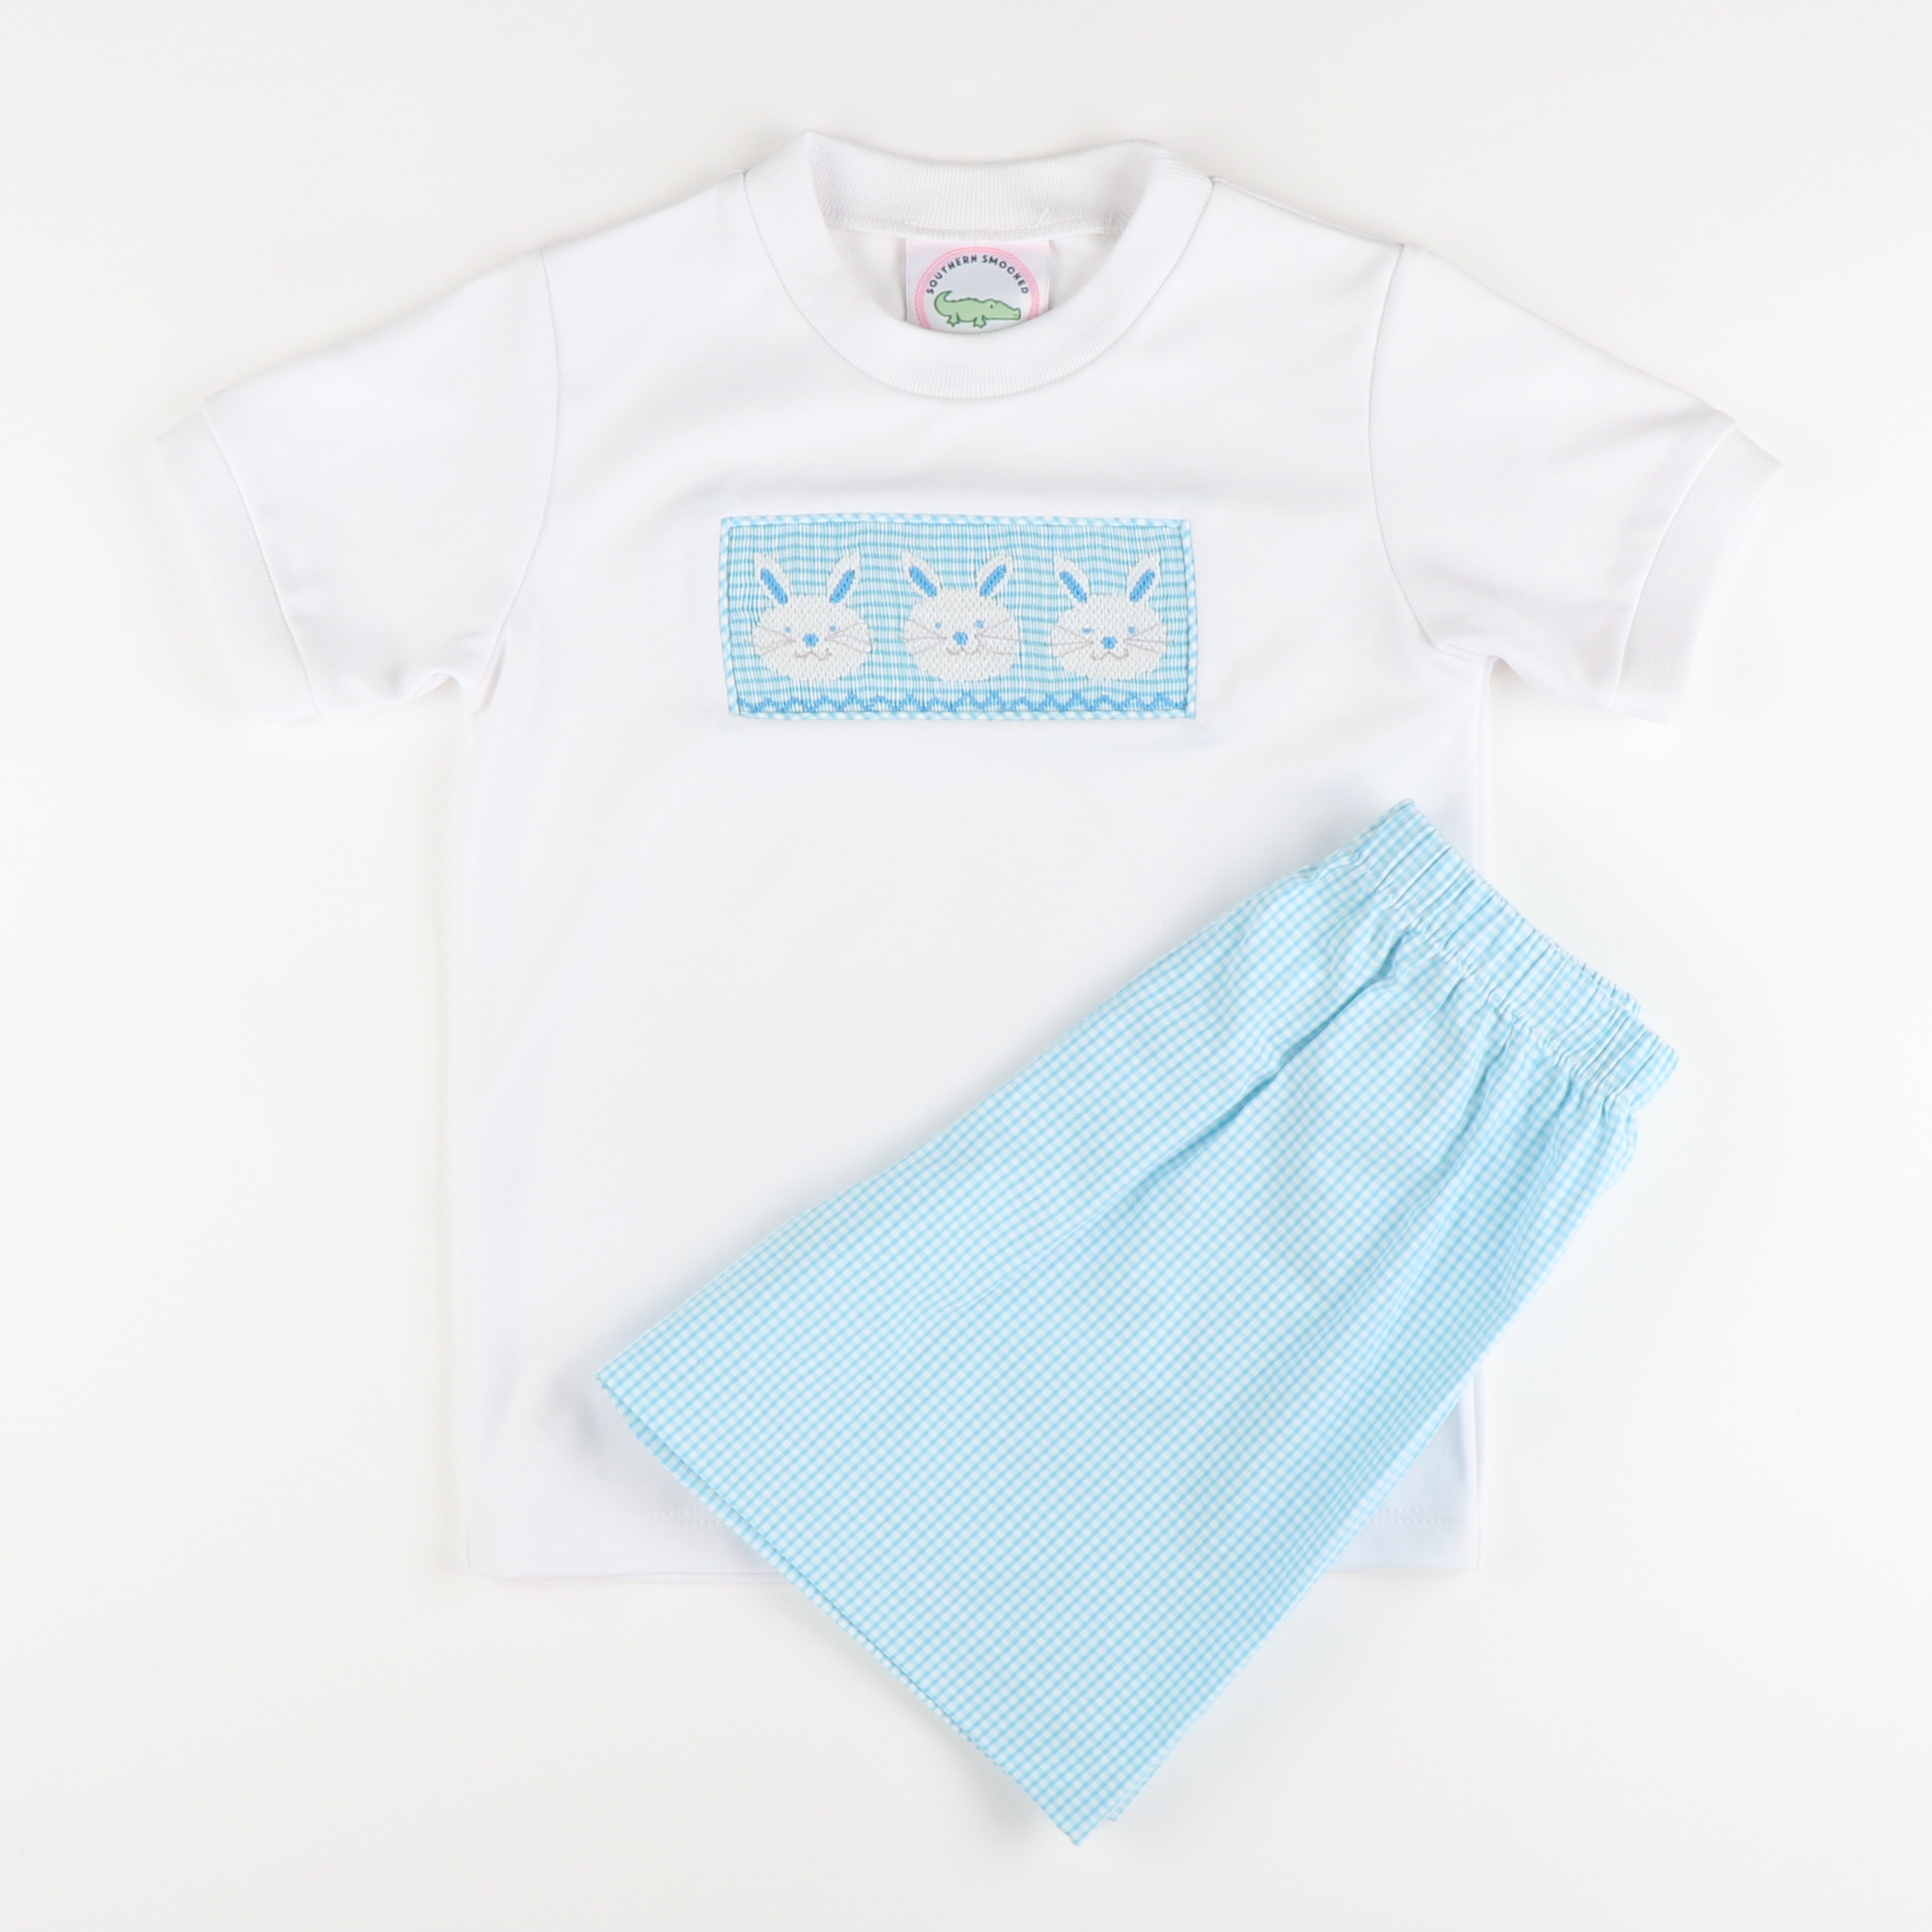 Smocked Bunny Face Shirt & Shorts Set - Turquoise Mini Gingham Seersucker